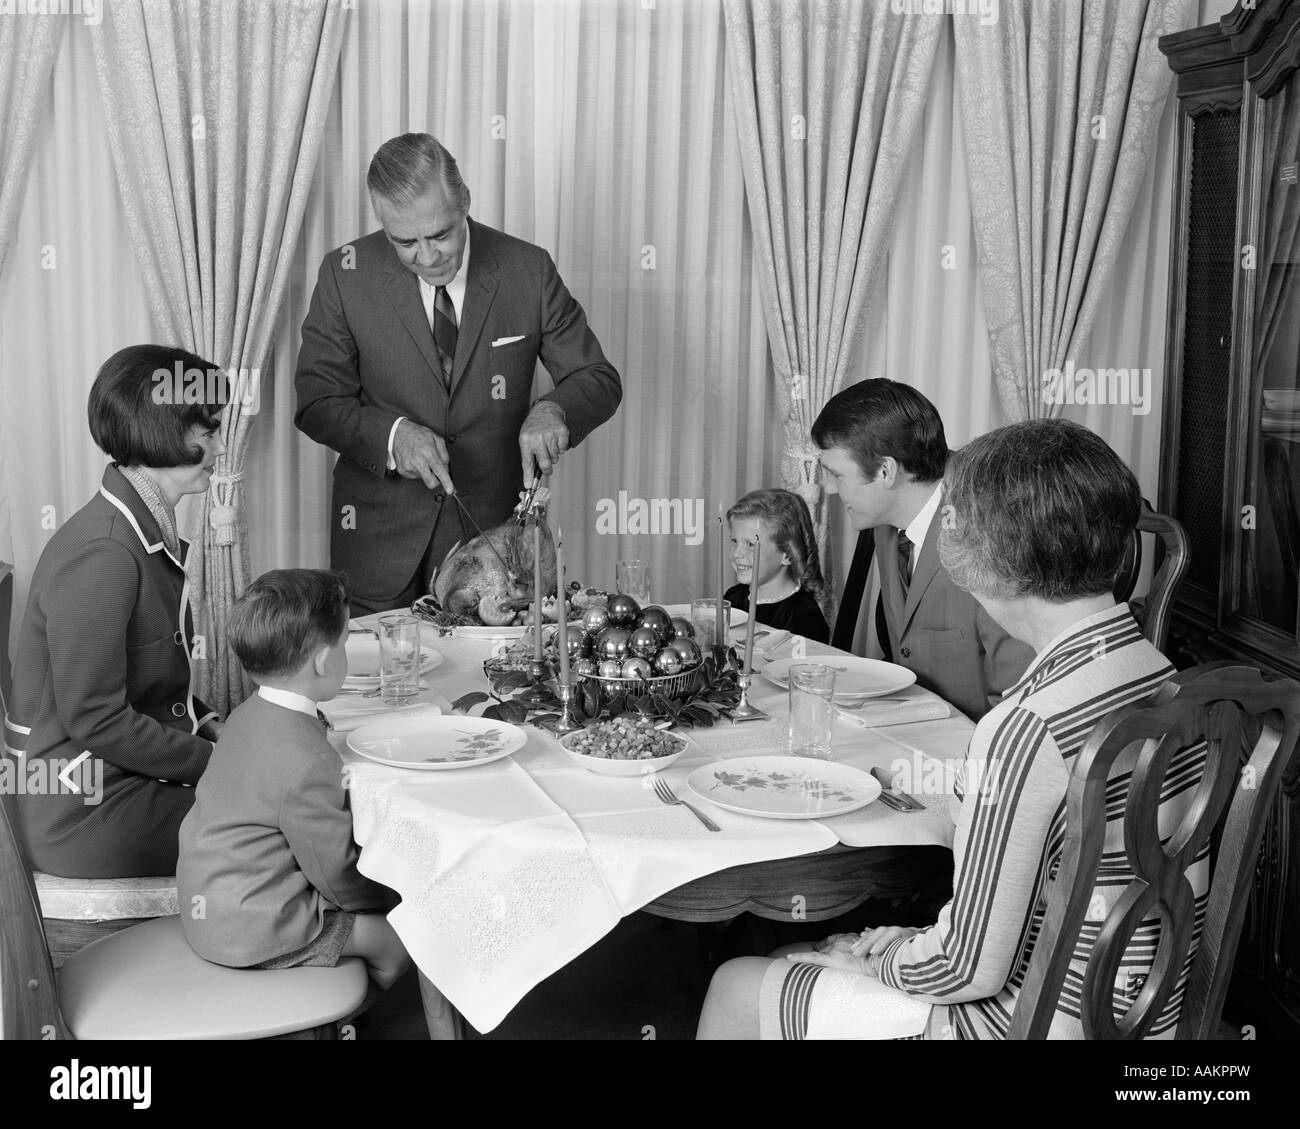 1960s GRANDFATHER STANDING CARVING THANKSGIVING TURKEY SURROUNDED BY THREE GENERATION FAMILY - Stock Image